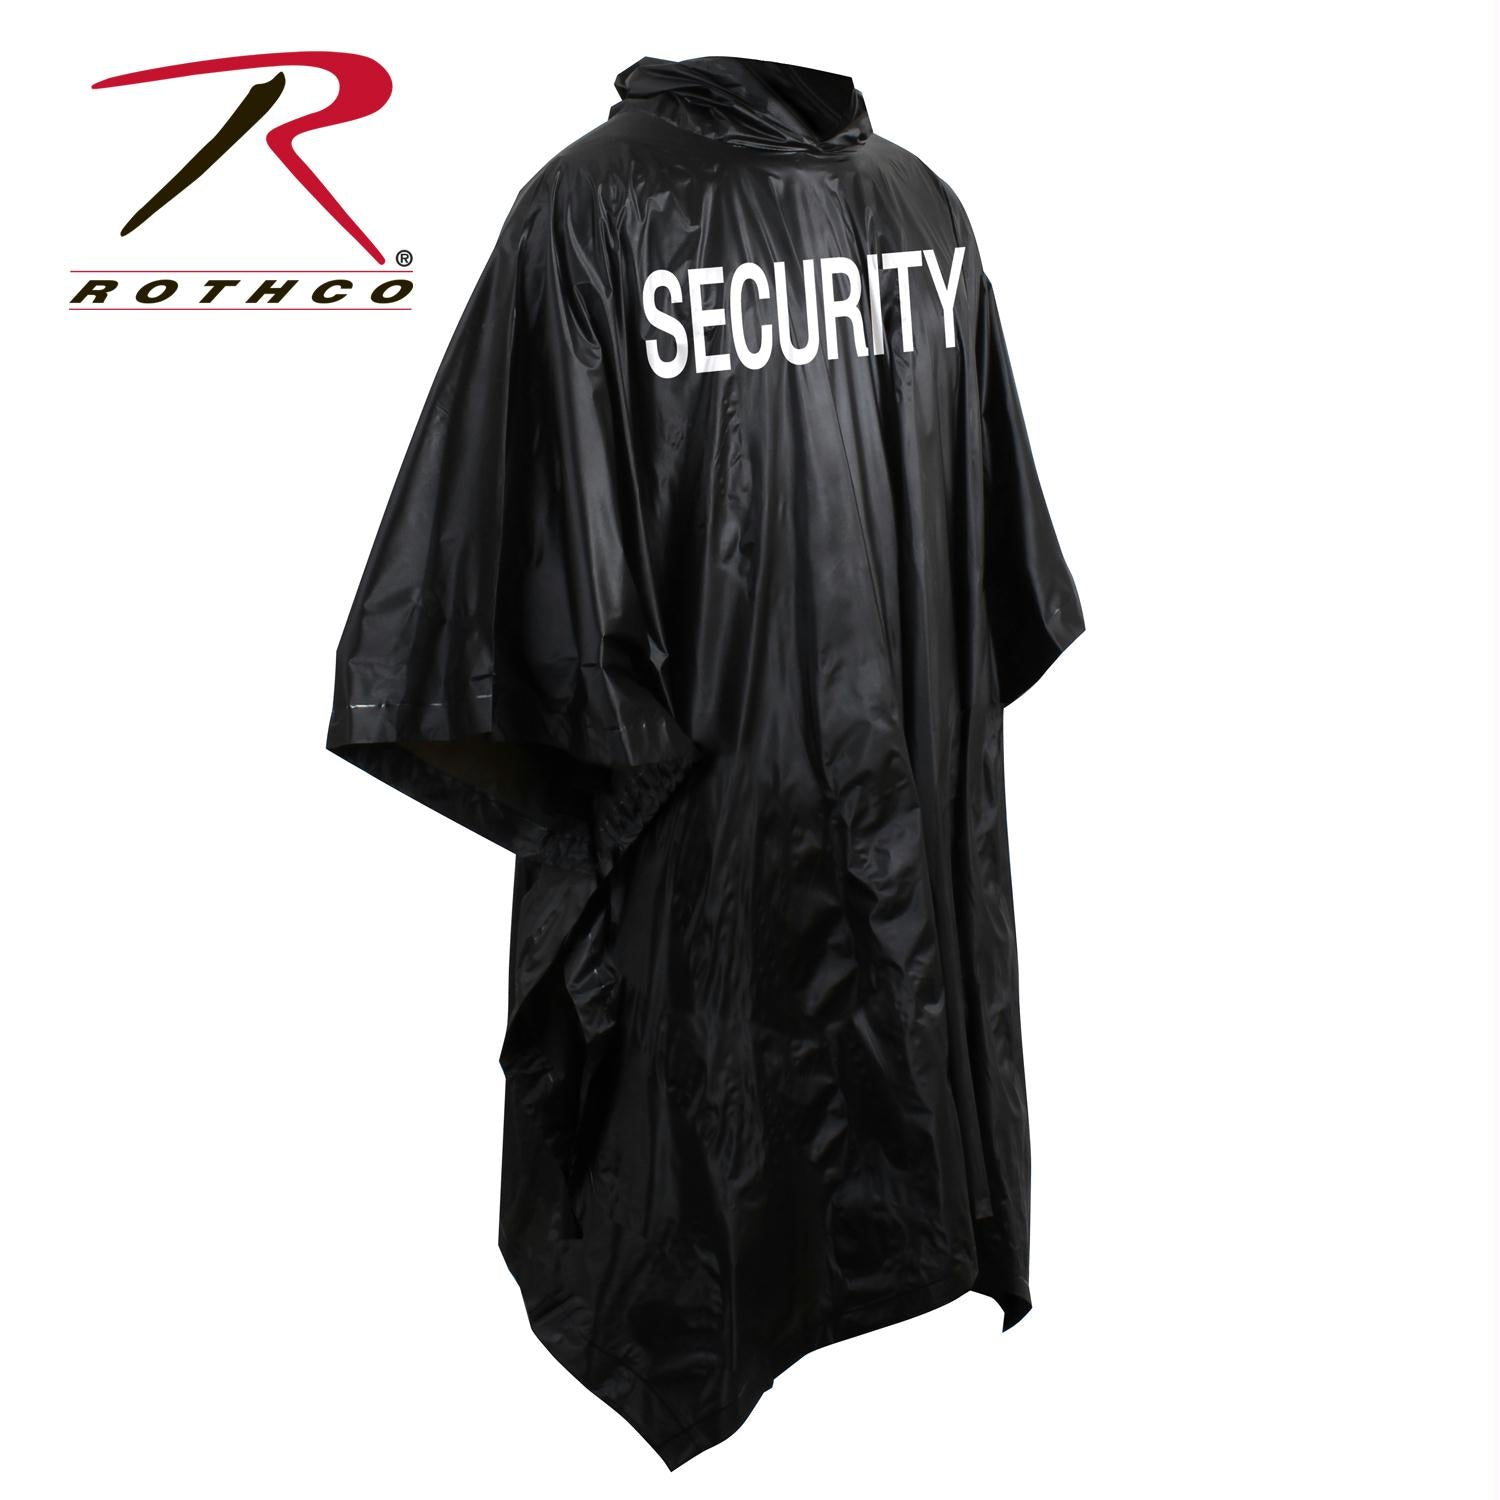 Rothco Security Poncho - Black / One Size